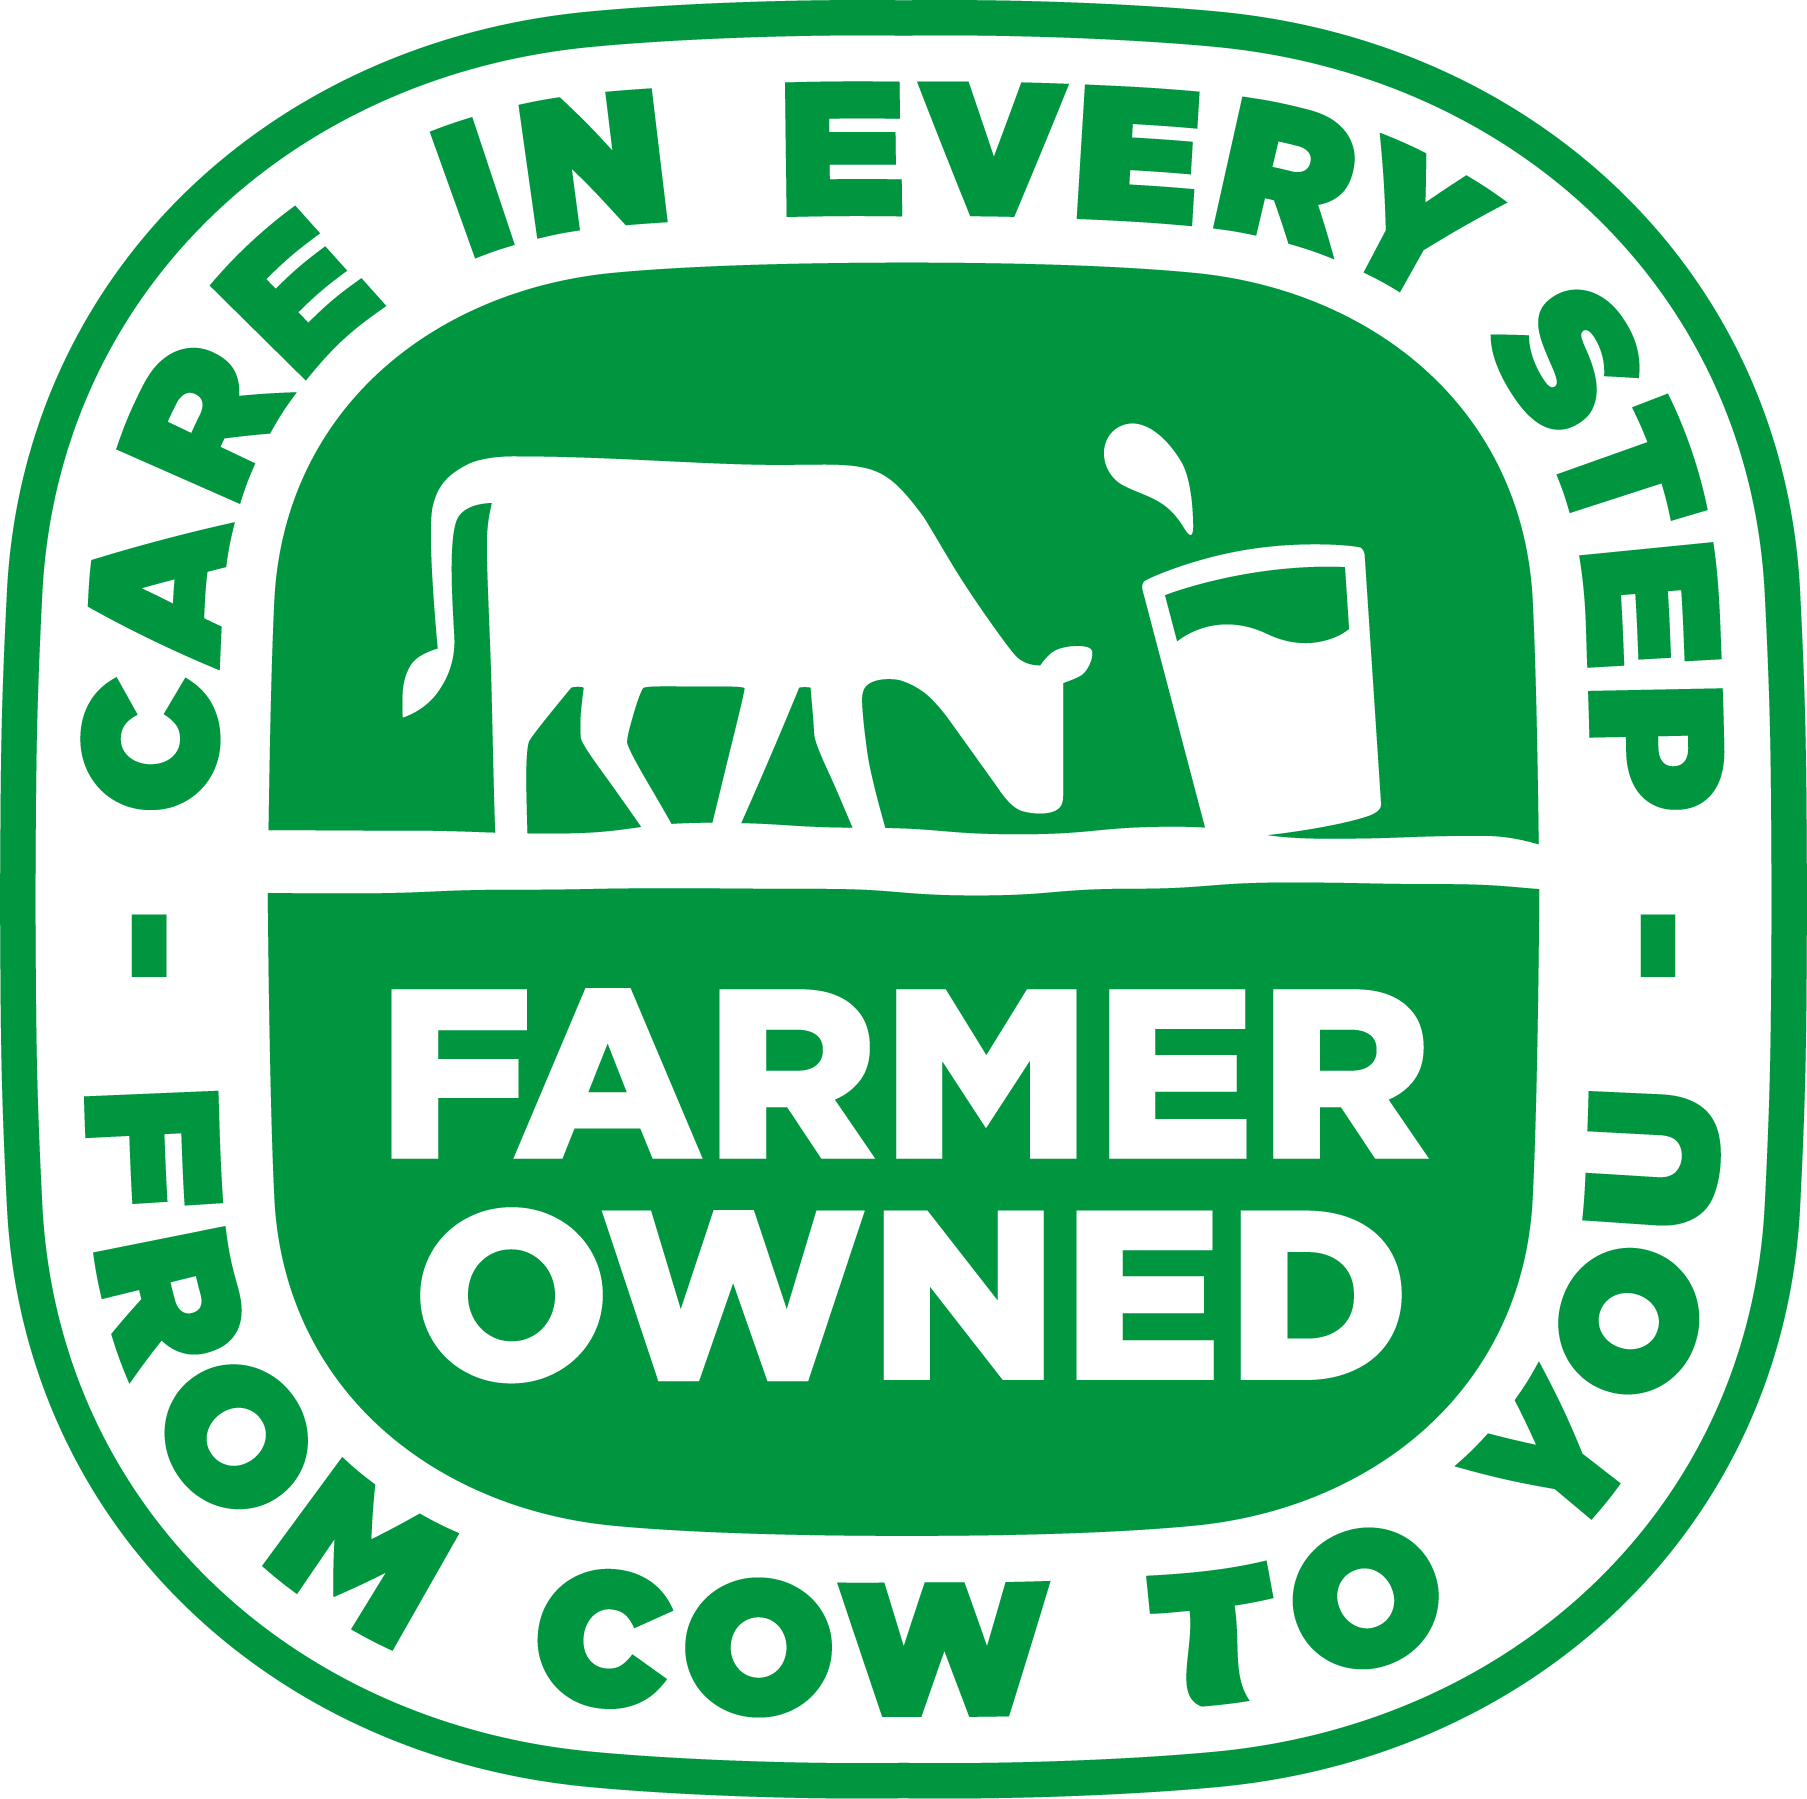 Arla to promote its farmer owners with new marque